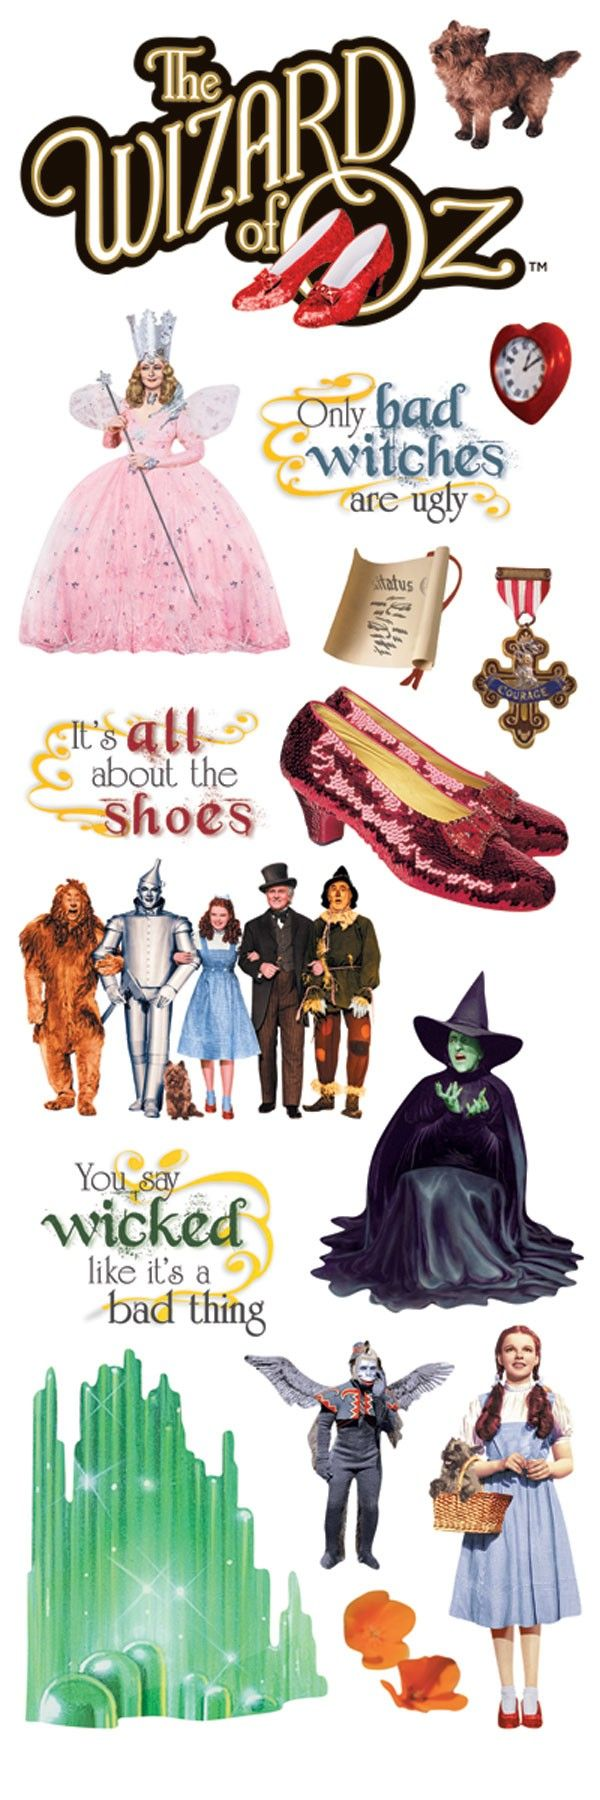 281 best The Wizard of Oz Related Stuff images on Pinterest